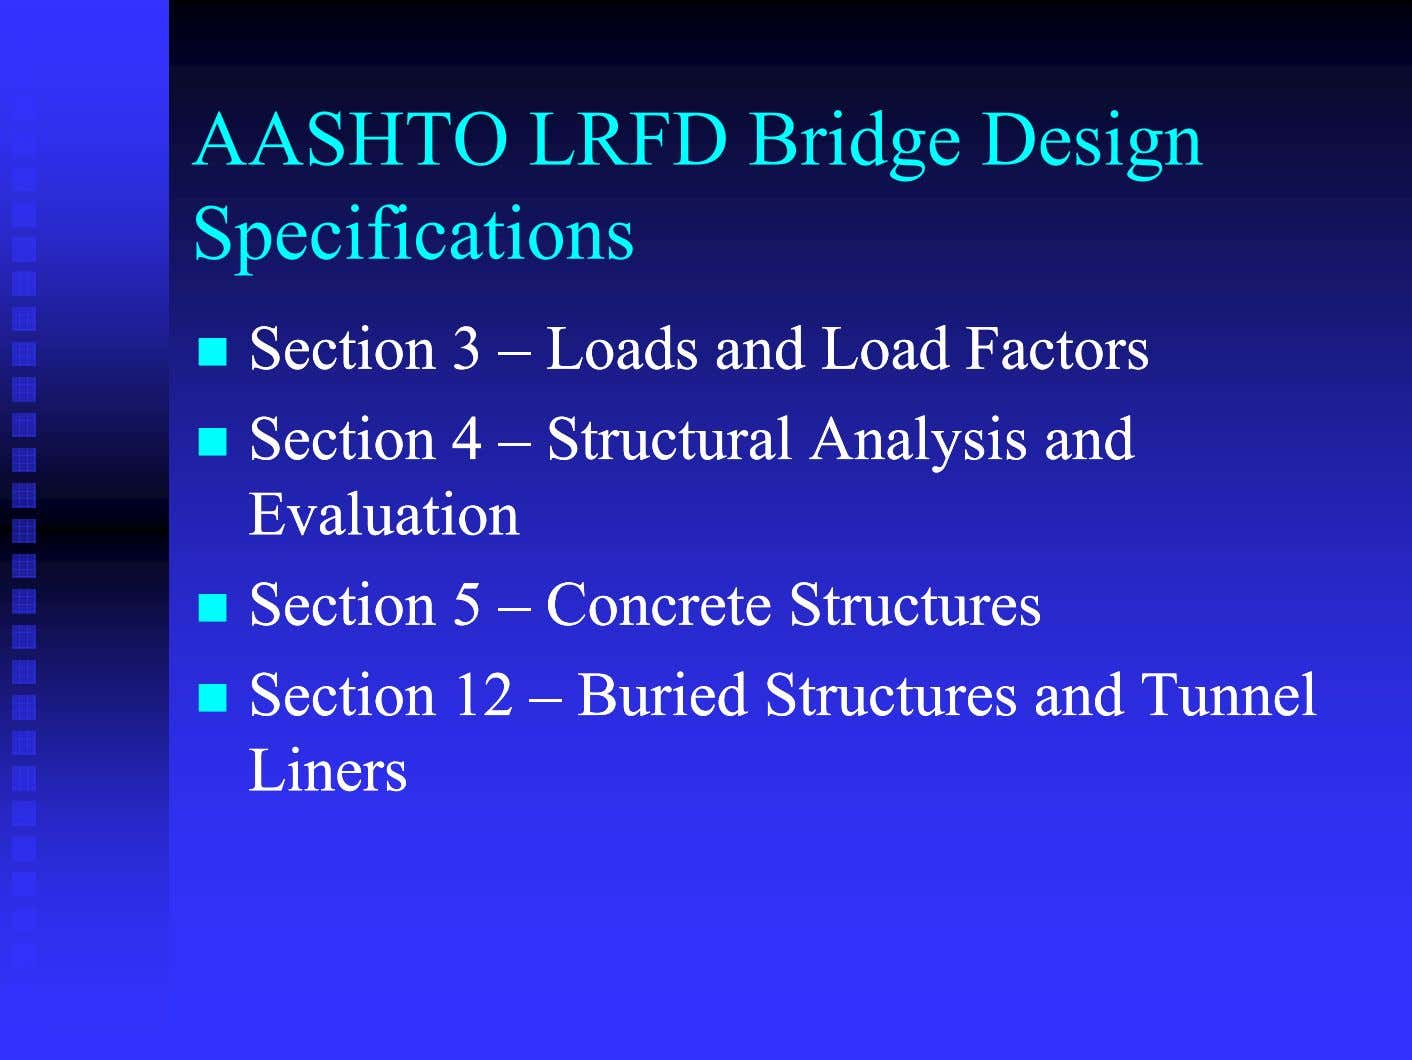 AASHTO LRFD Bridge Design Specifications  SectionSection 33 –– LoadsLoads andand LoadLoad FactorsFactors